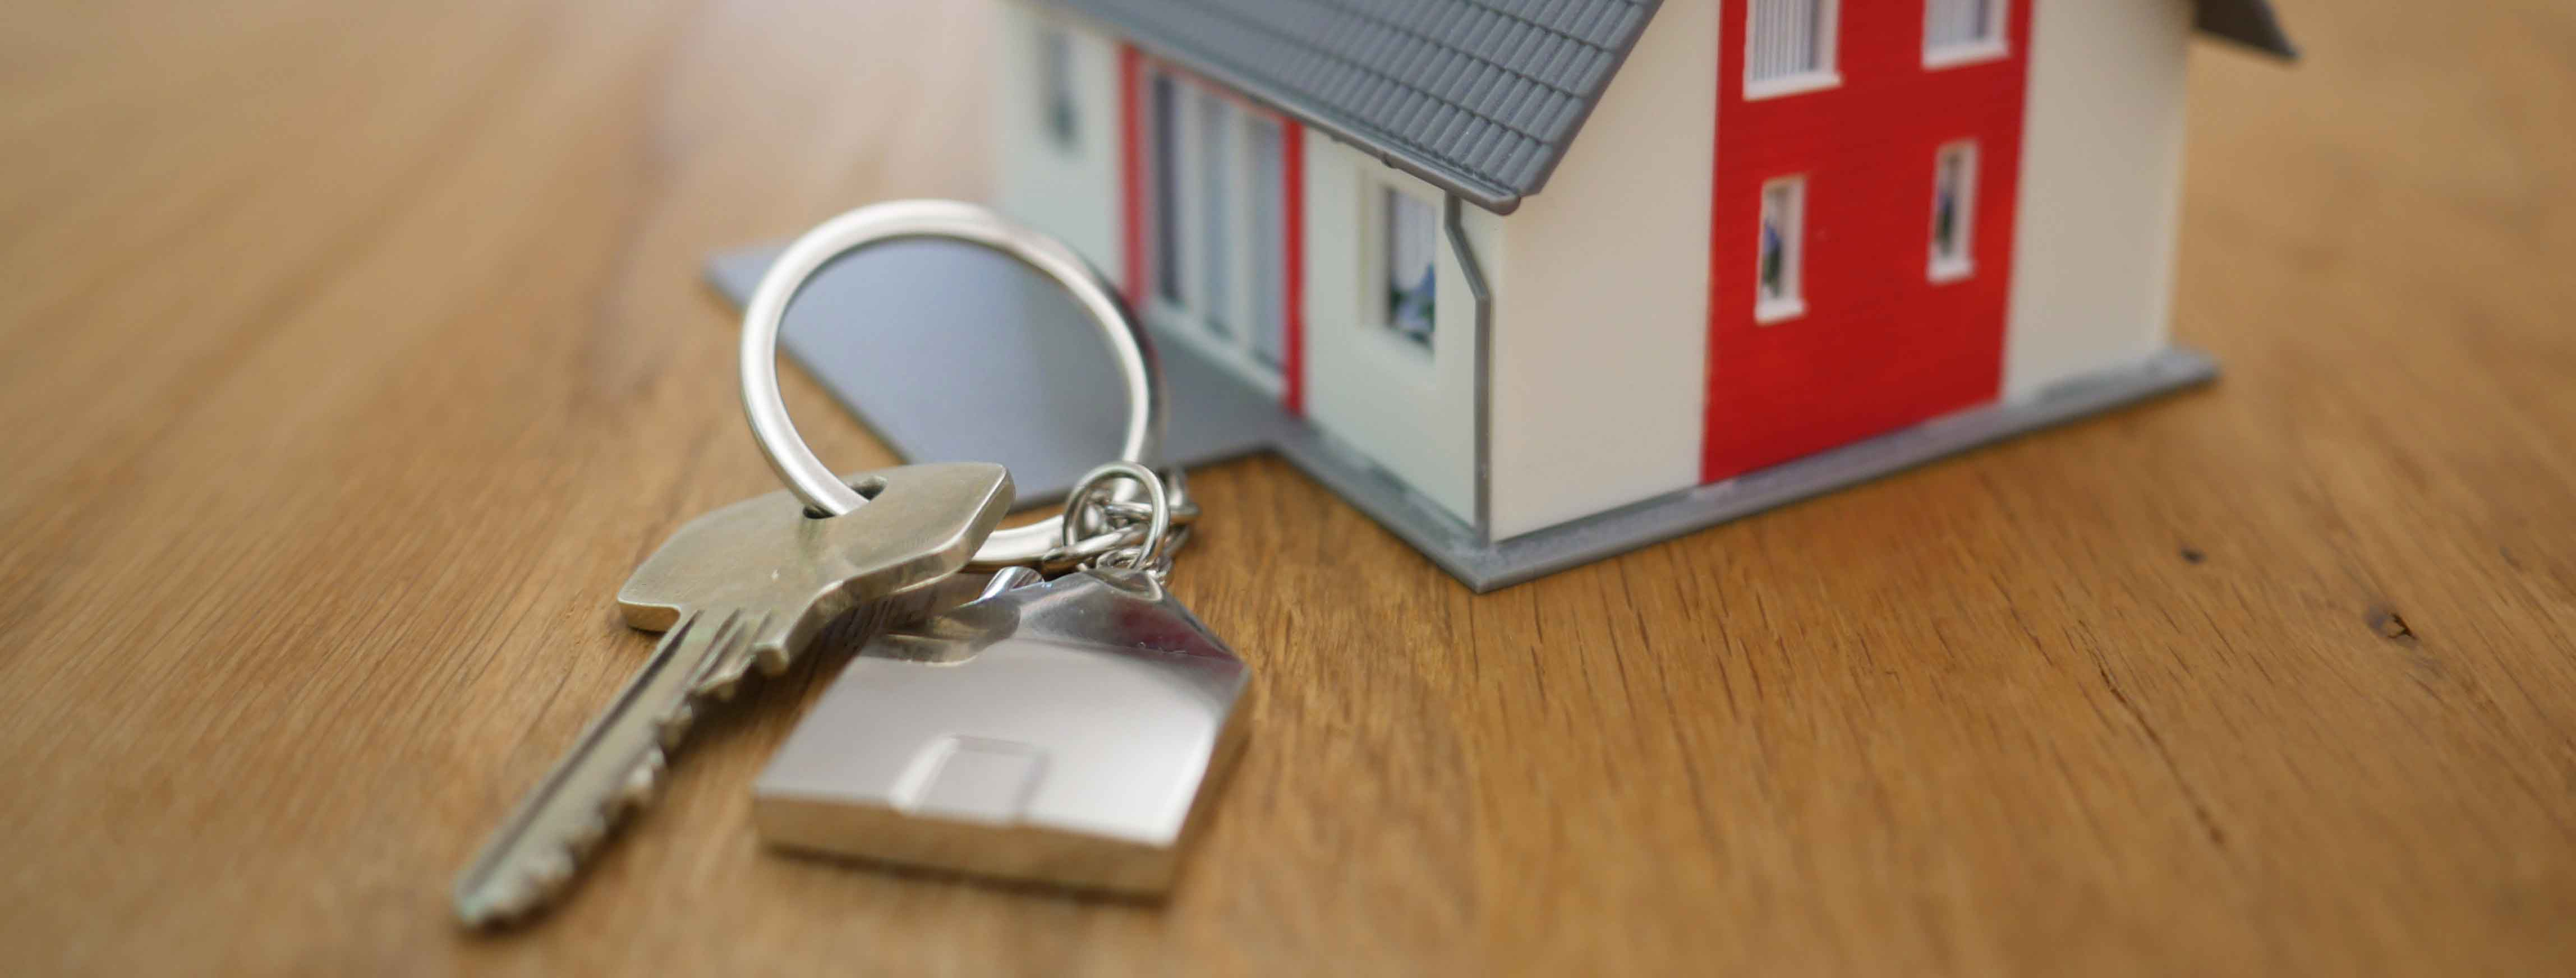 Hot market or cold market? Know what the market is when buying a home.